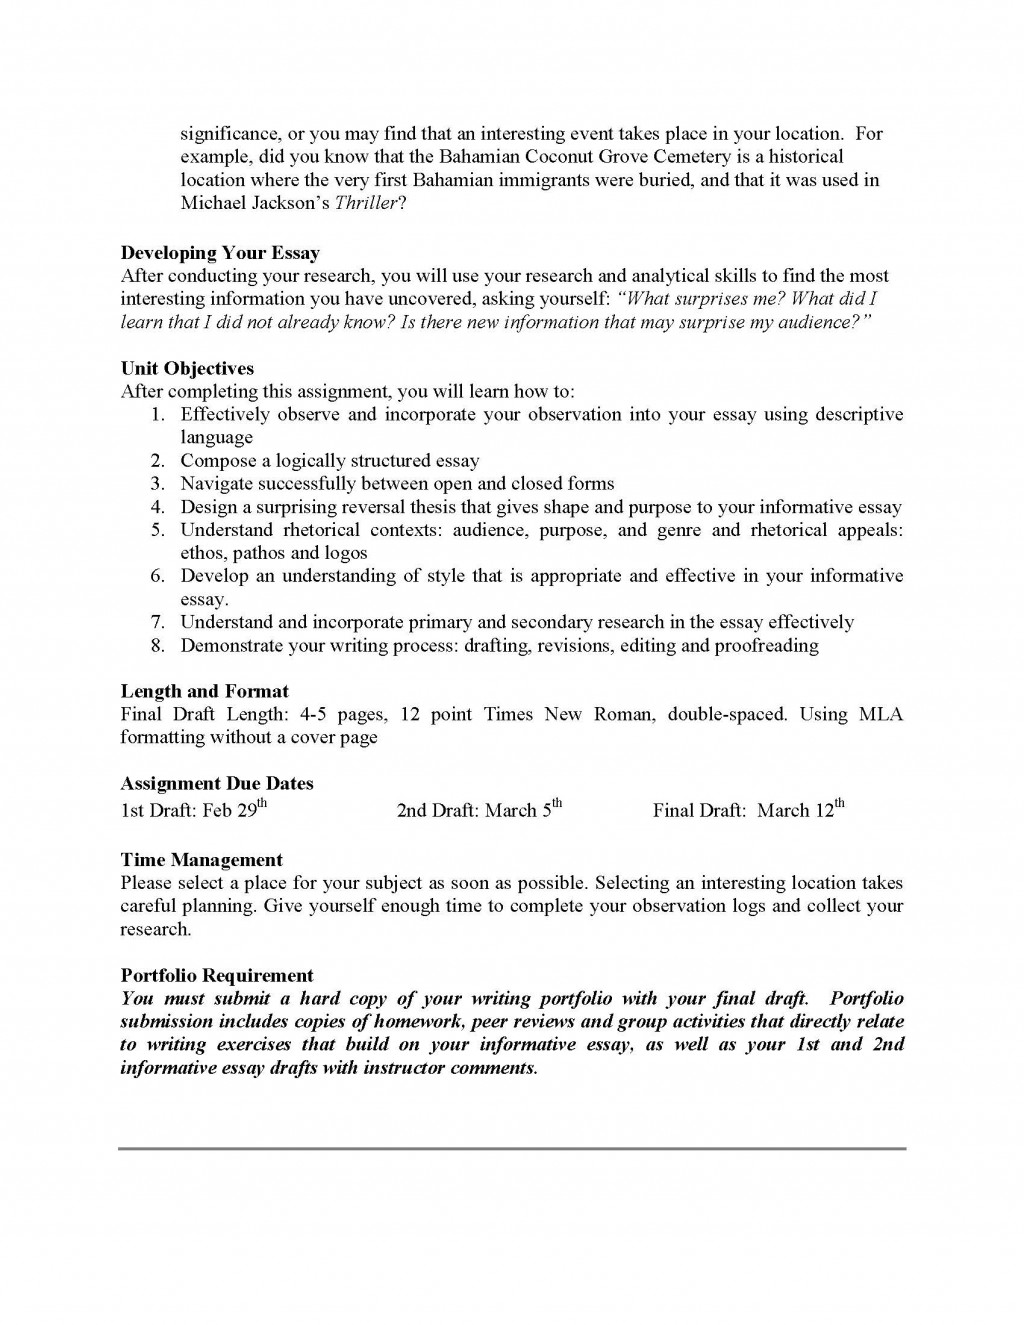 014 Informative Essay Unit Assignment Page 2 Dreaded Outline Template Pdf Topics For 5th Grade Rubric Fsa Large